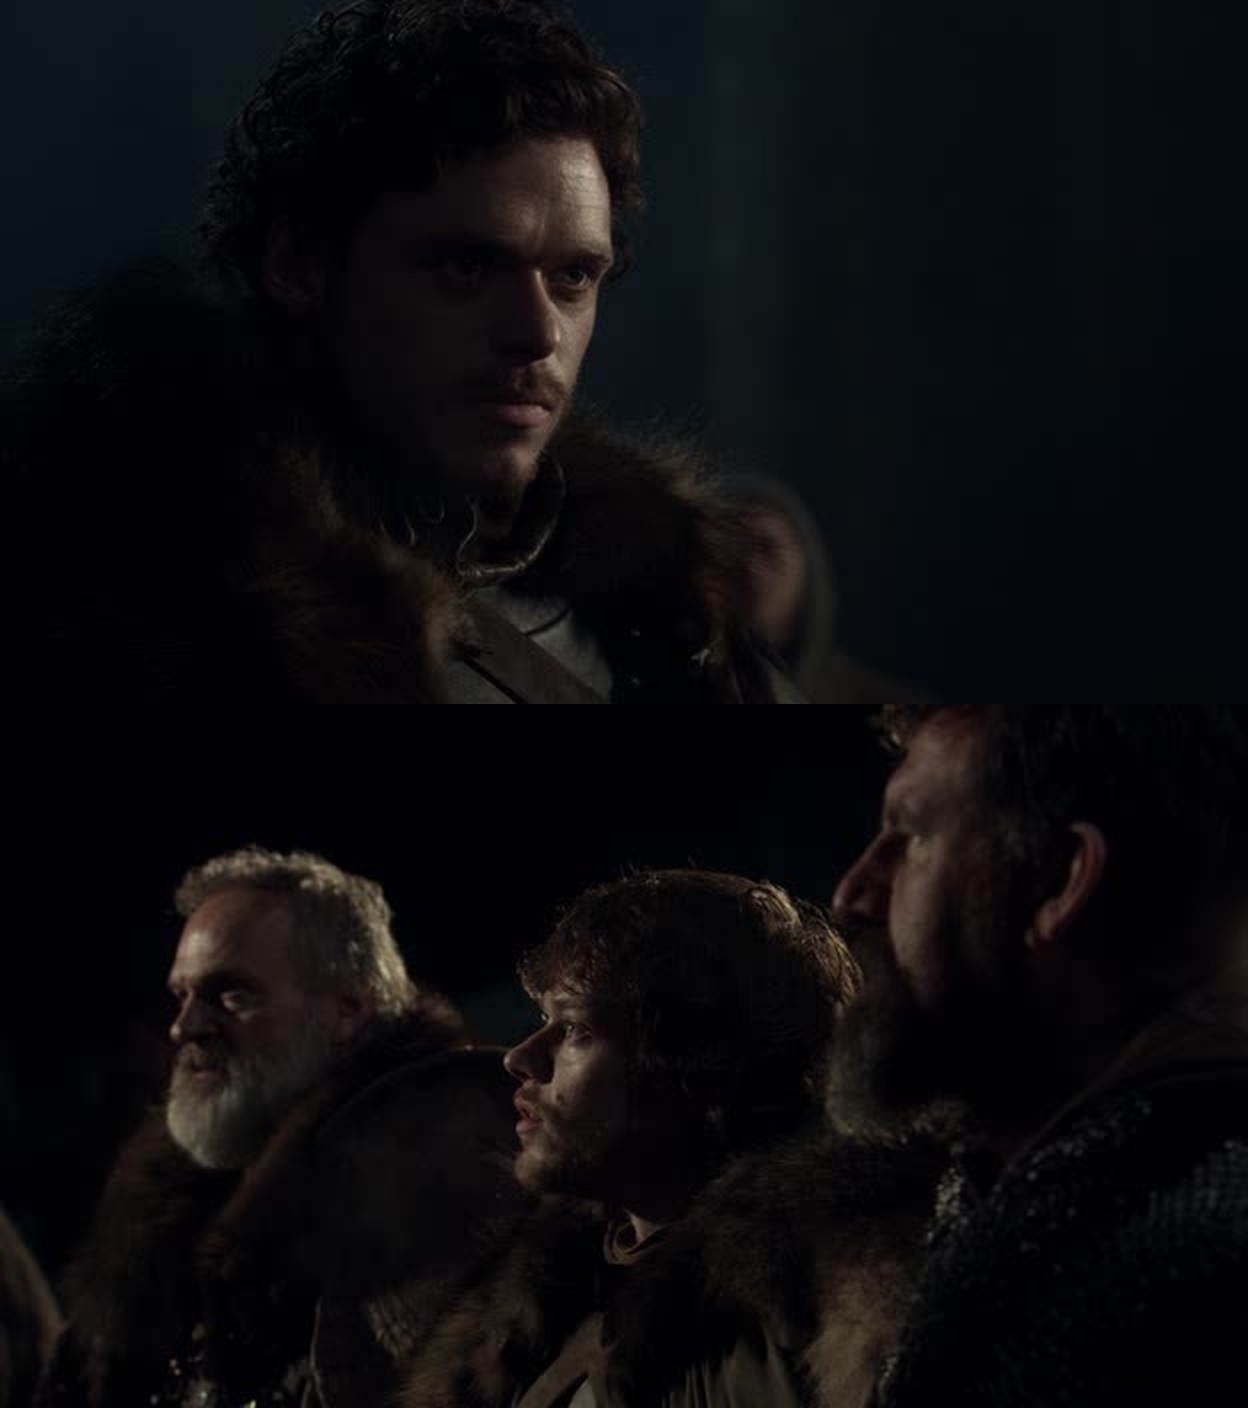 The king of the north.